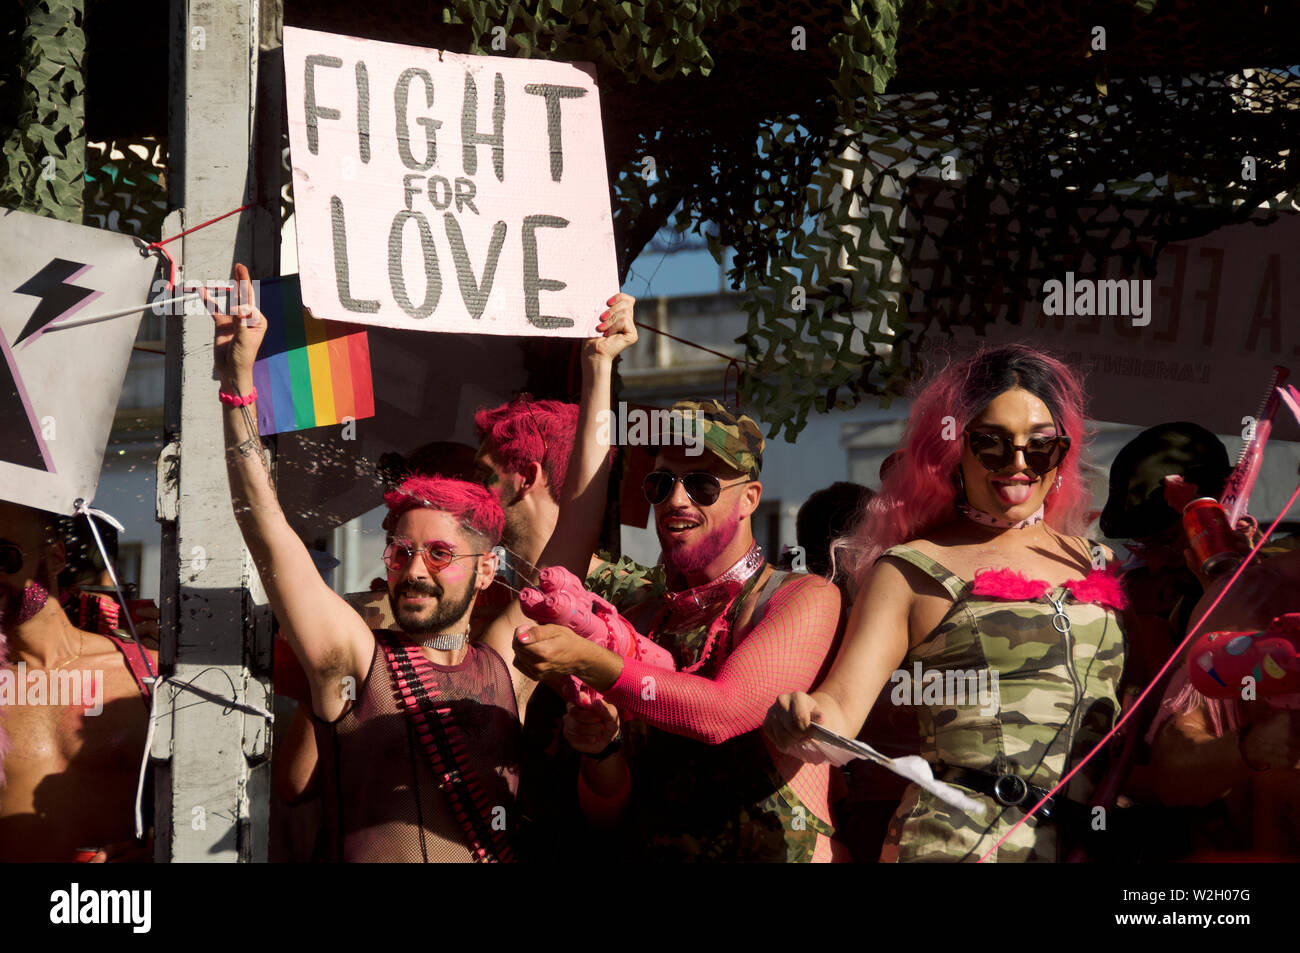 Partygoers at the gay pride 2019 event in Barcelona - Stock Image